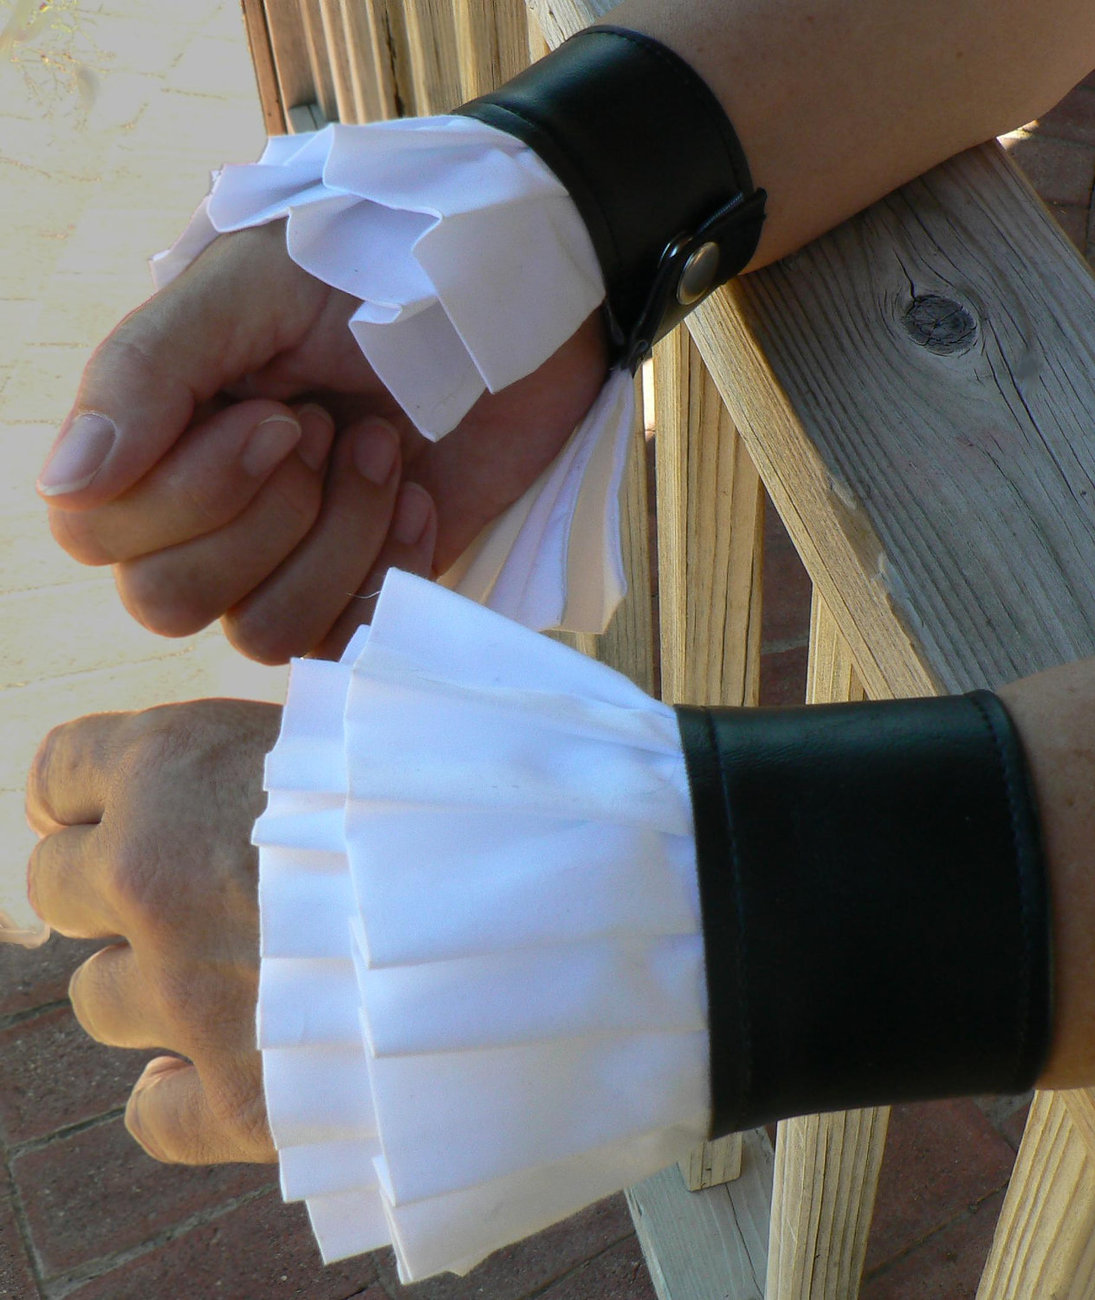 Primary image for Shirtless Wrist Cuffs